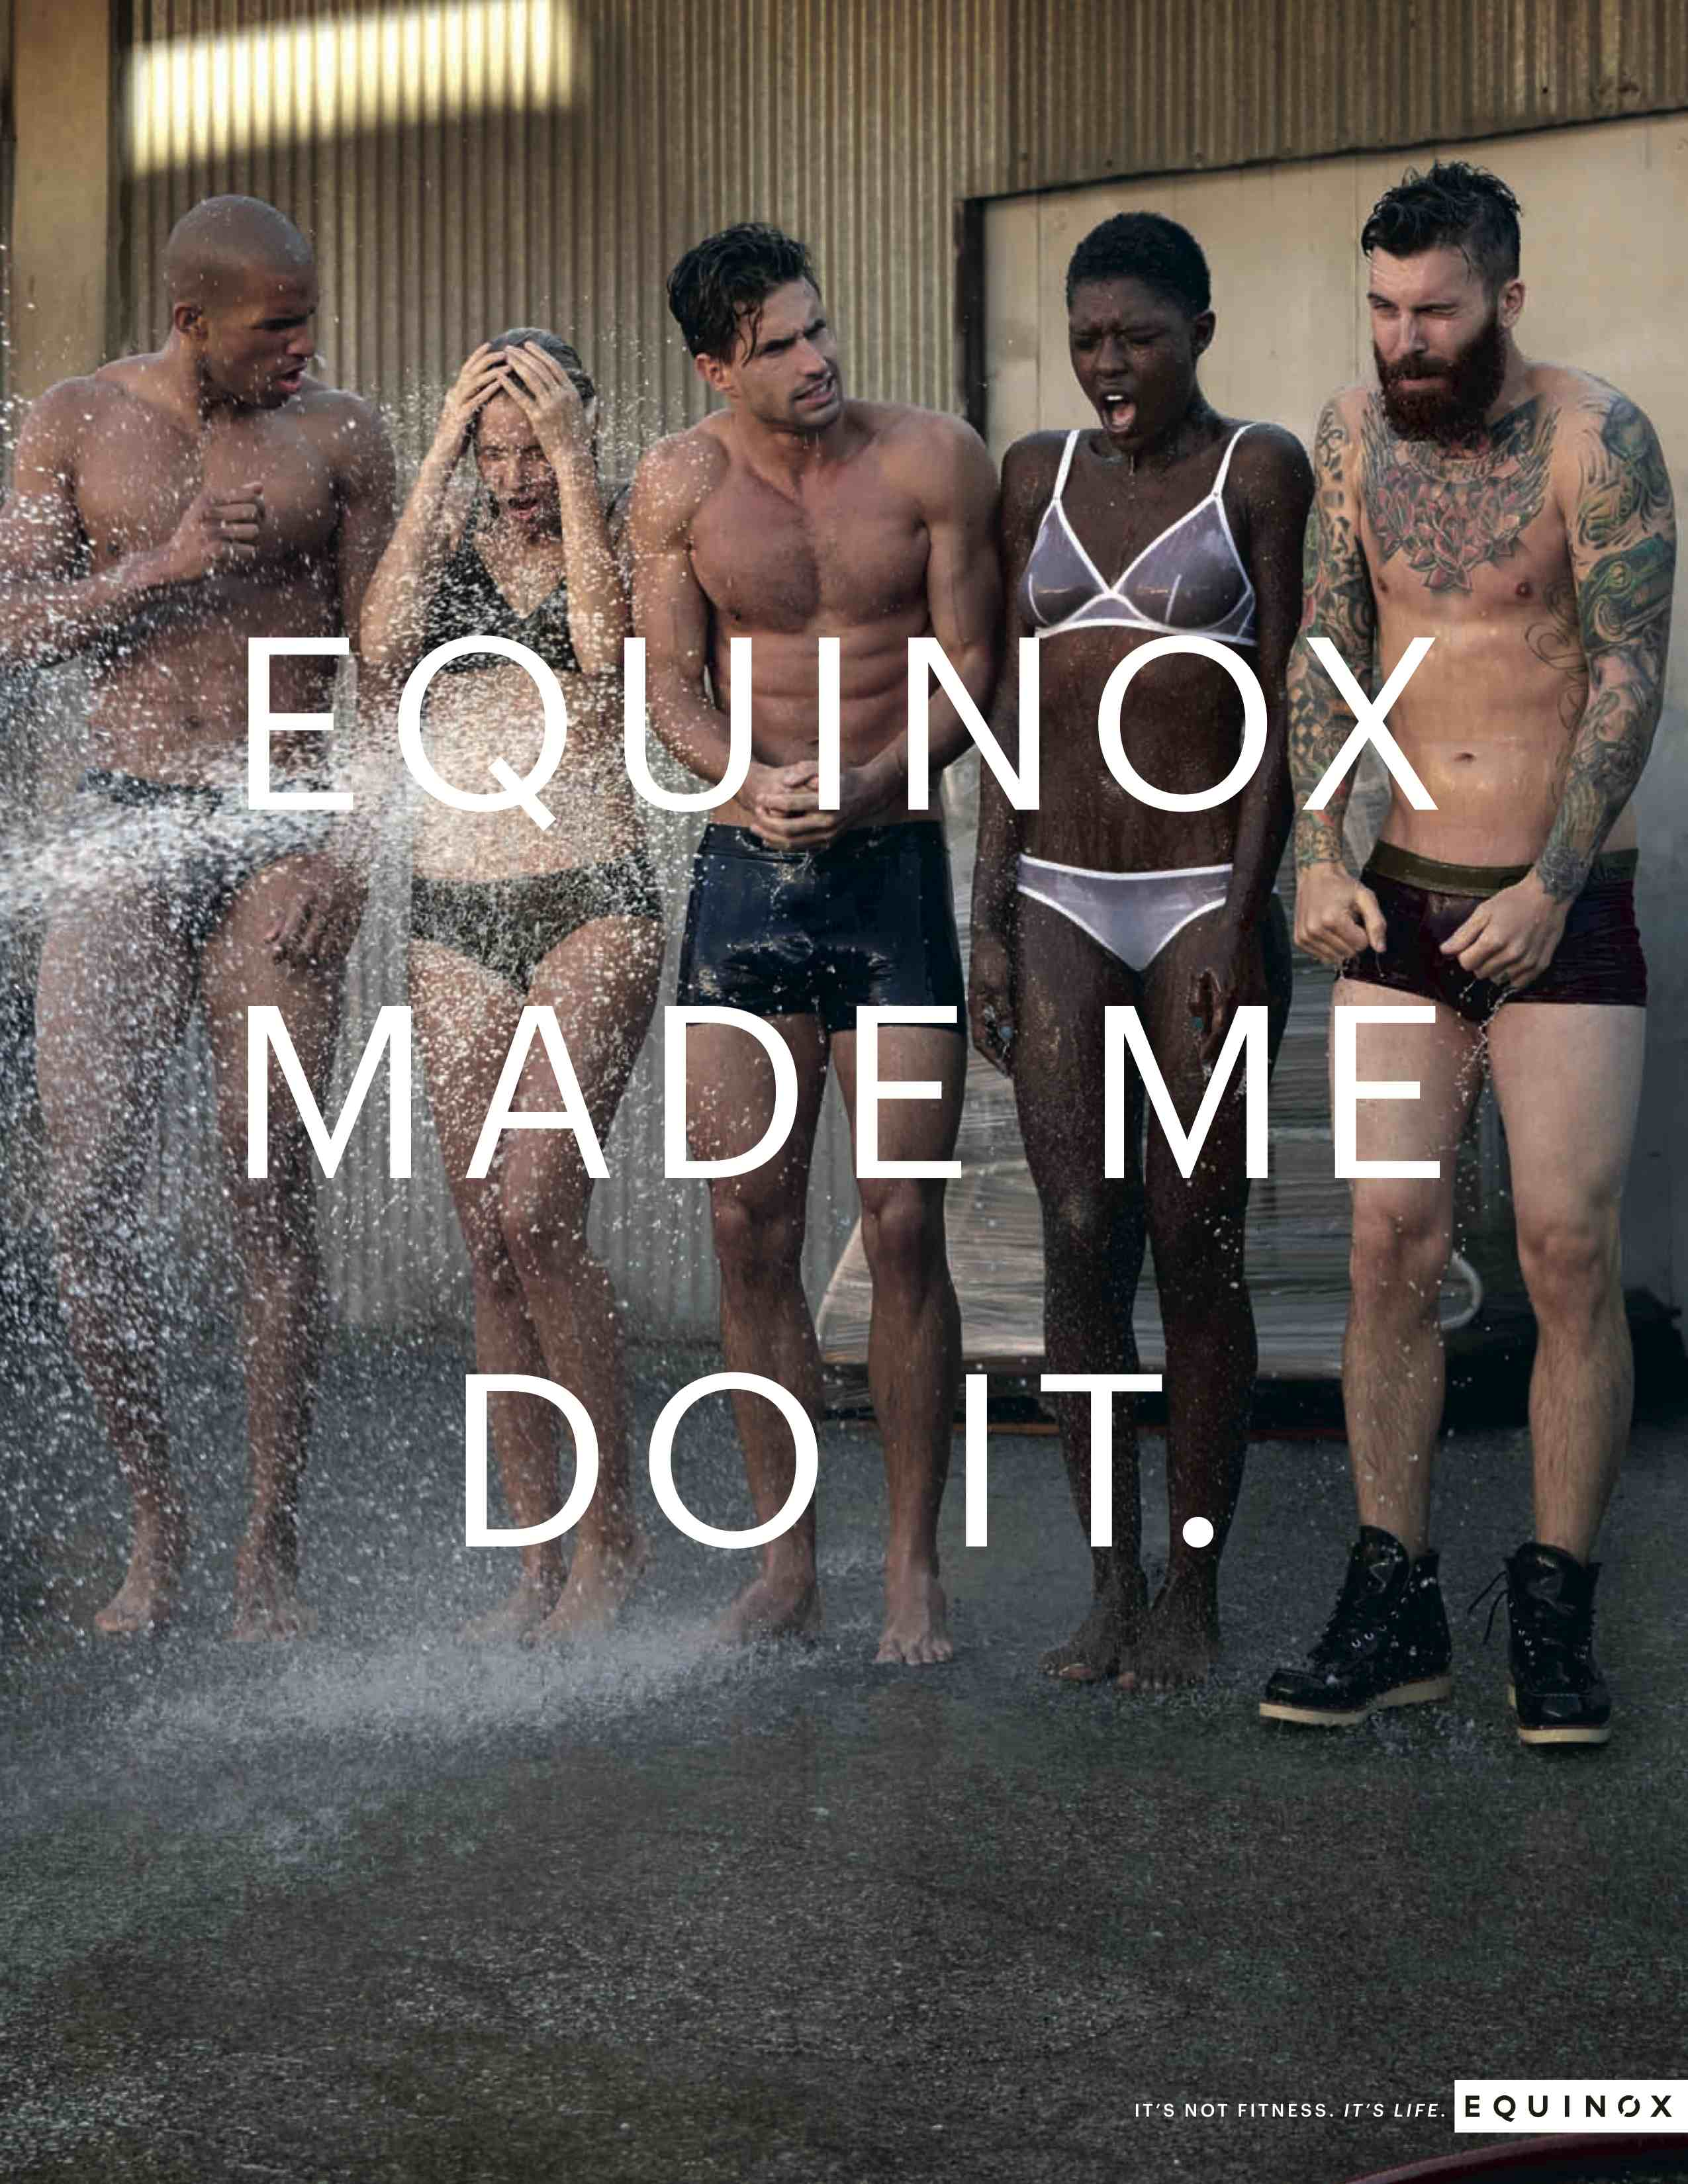 Equinox ad campaign 2014 Equinox Made Me Do It 02